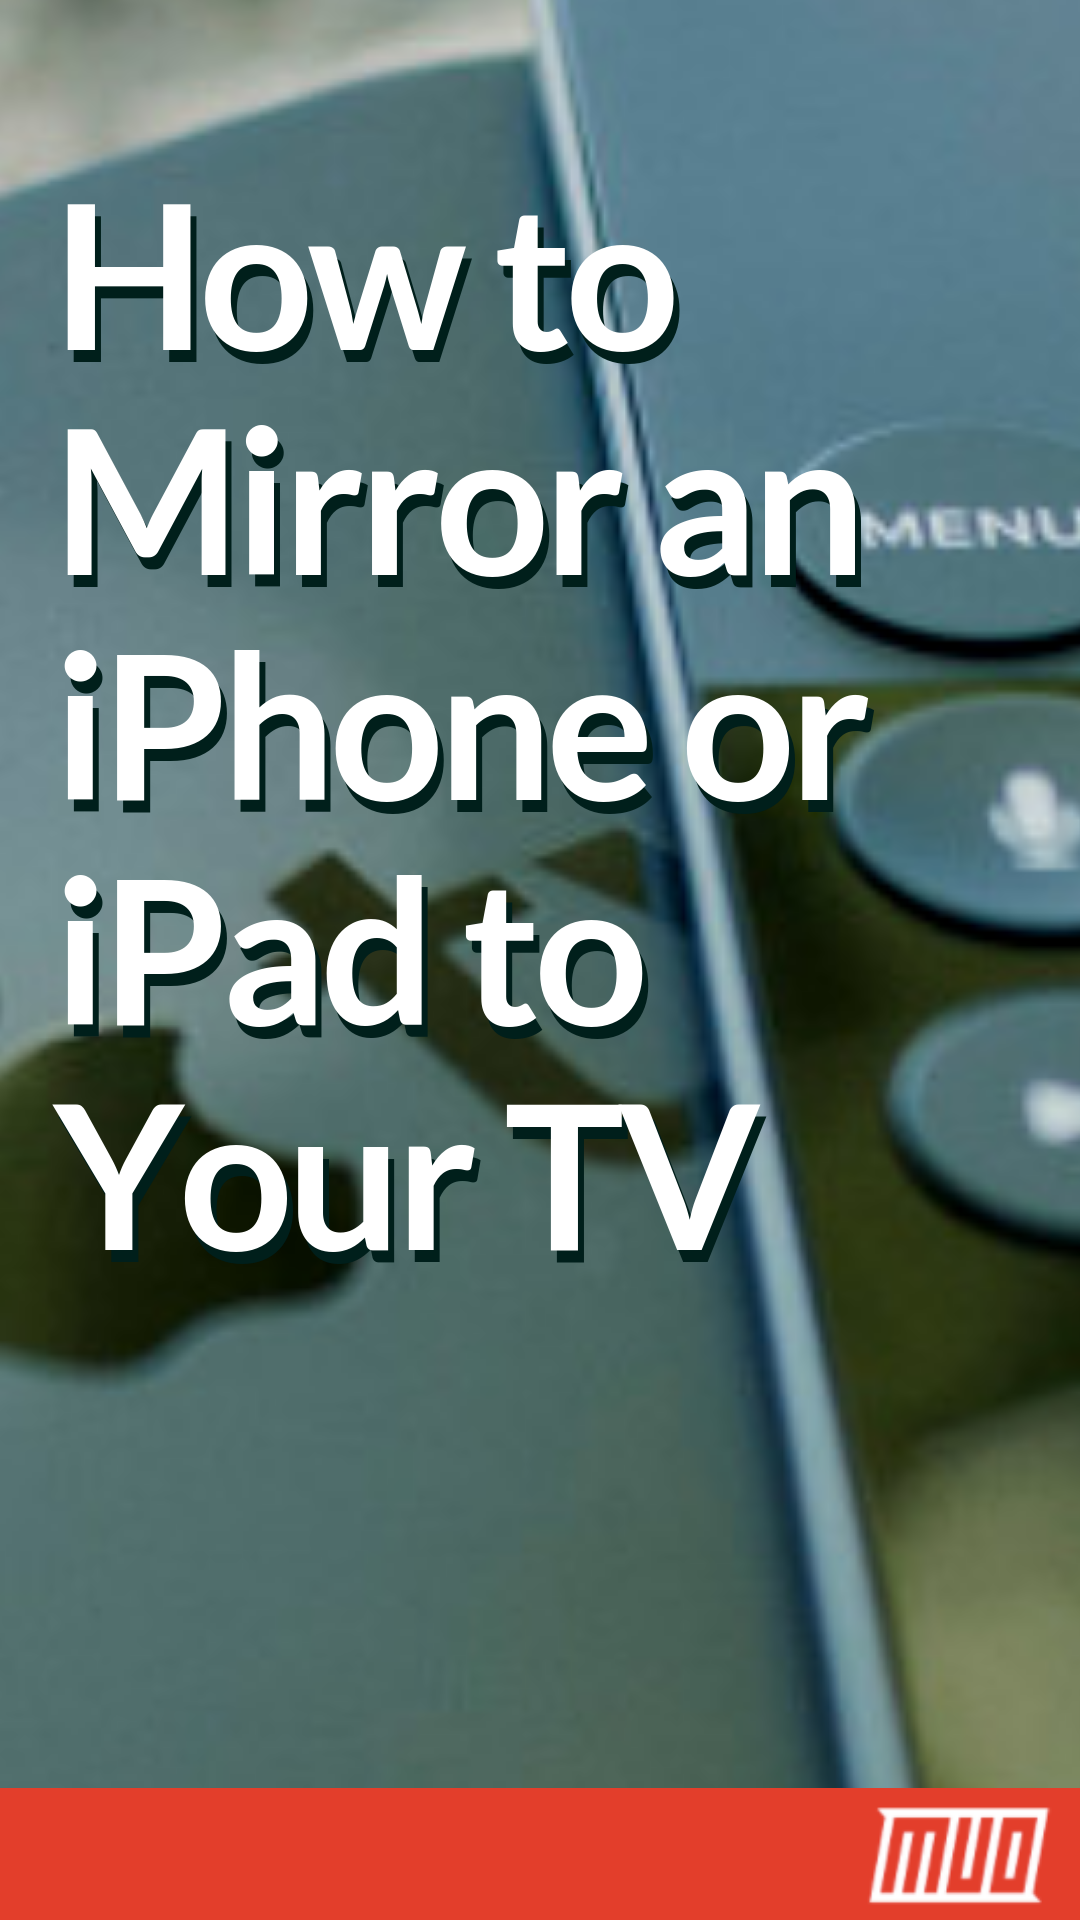 How to Screen Mirror an iPhone or iPad to Your TV Iphone